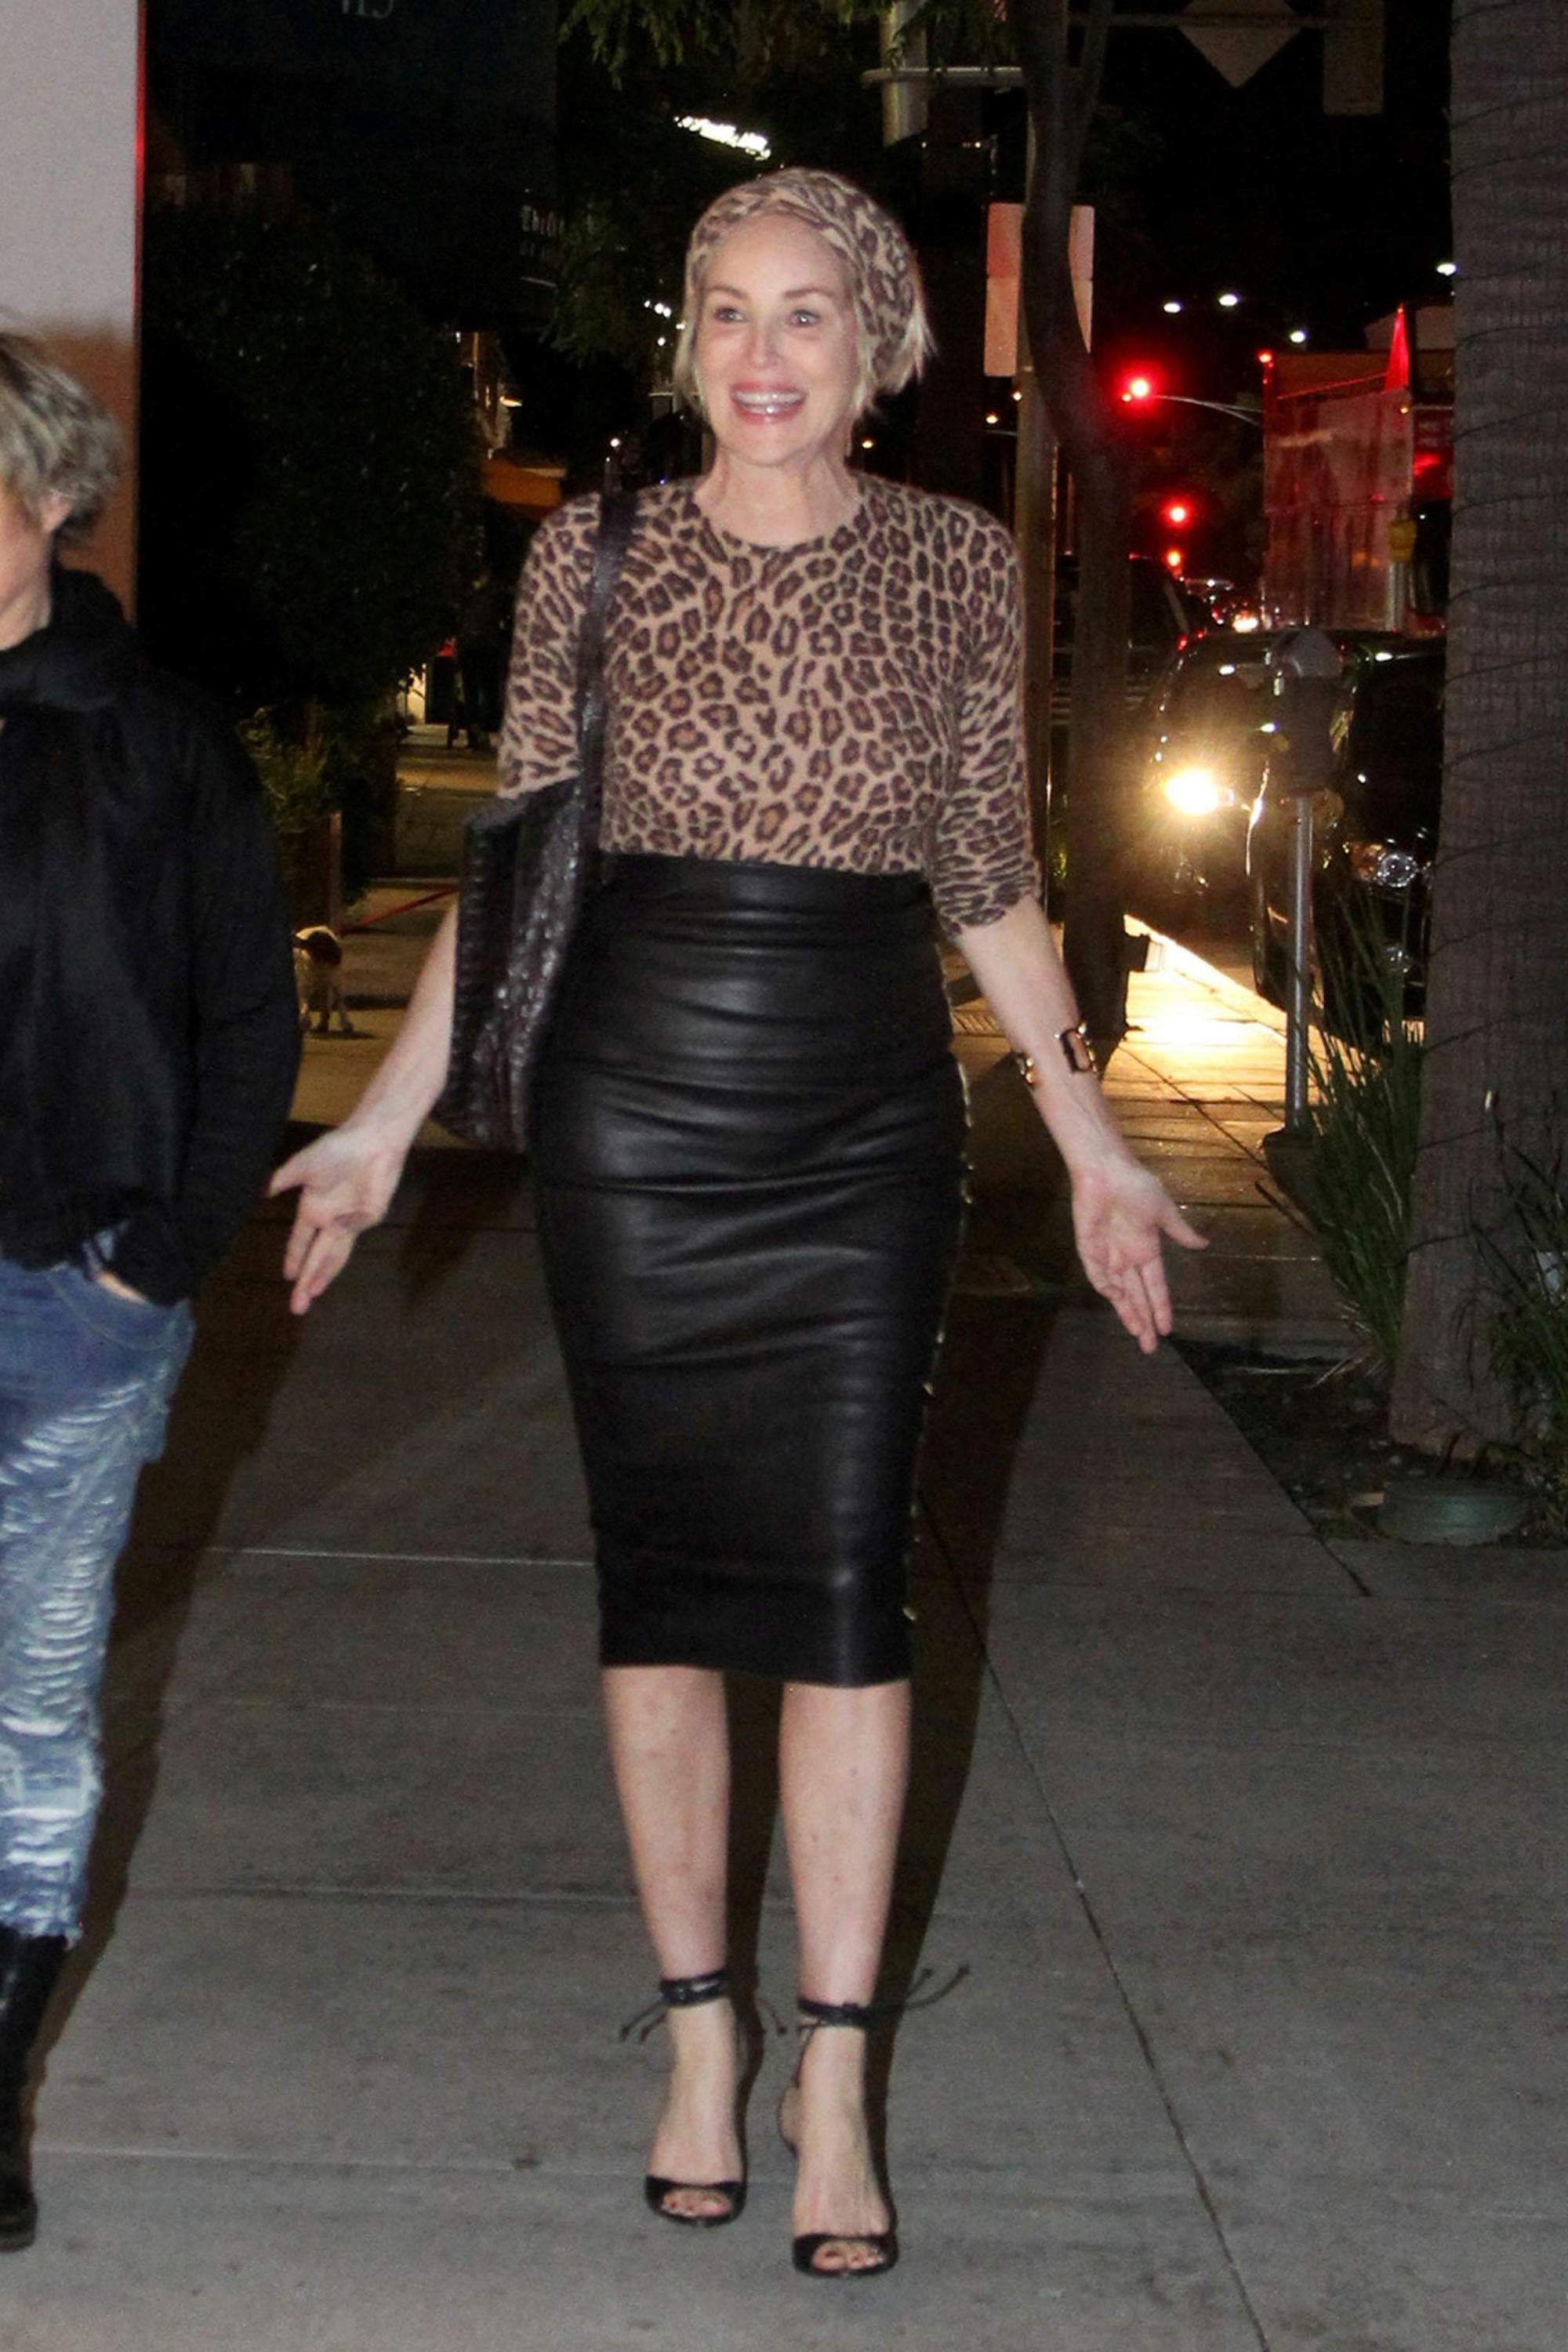 Sharon Stone dinner with a friend